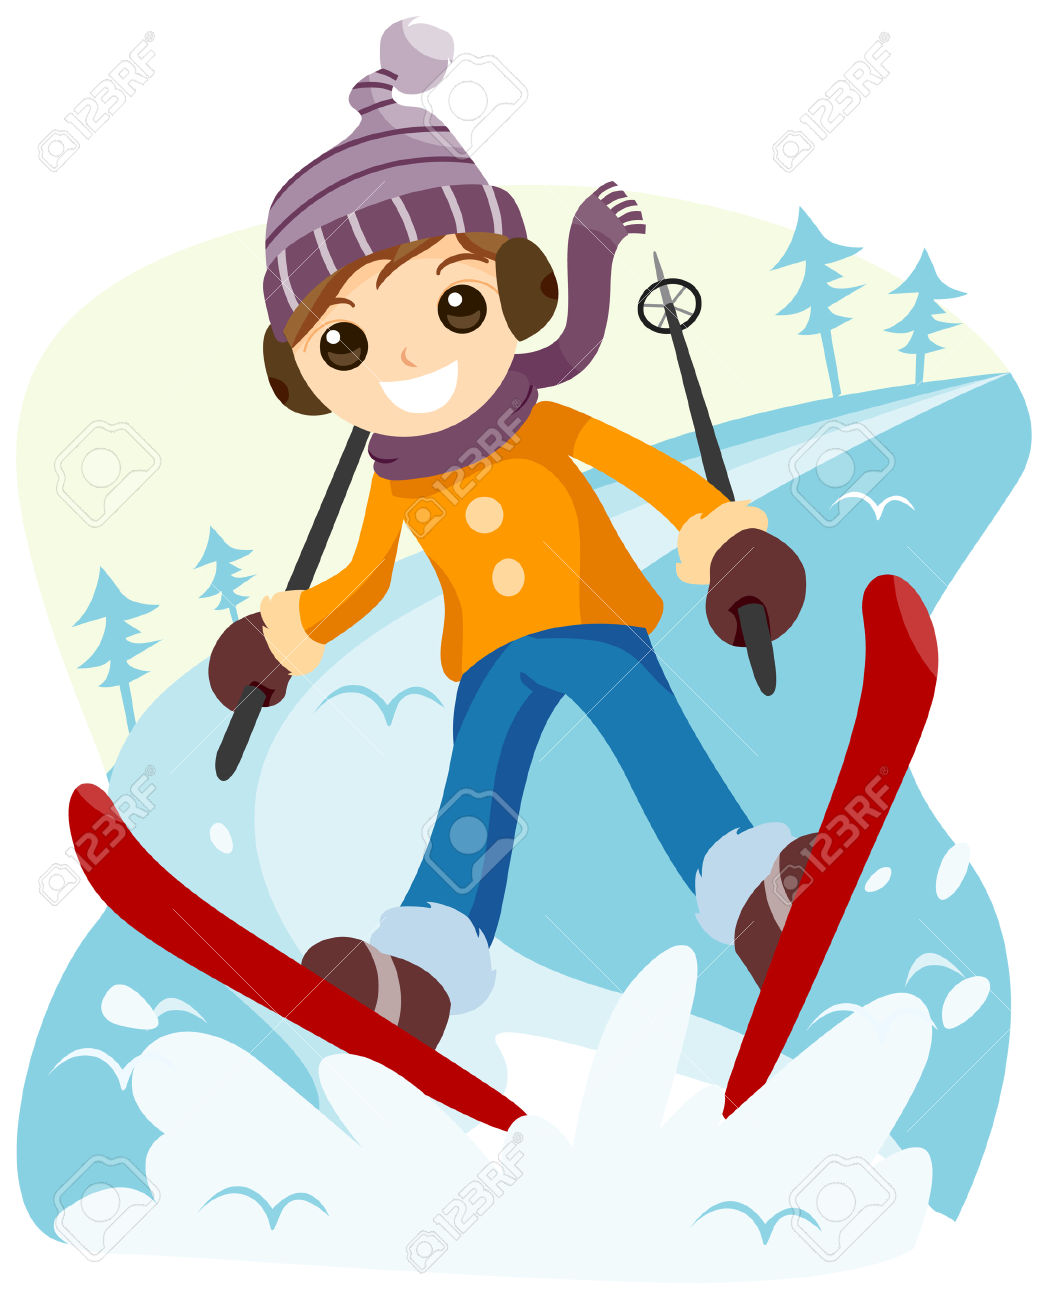 Ski clipart snow skiing Collection Snow skiing Pie clipart